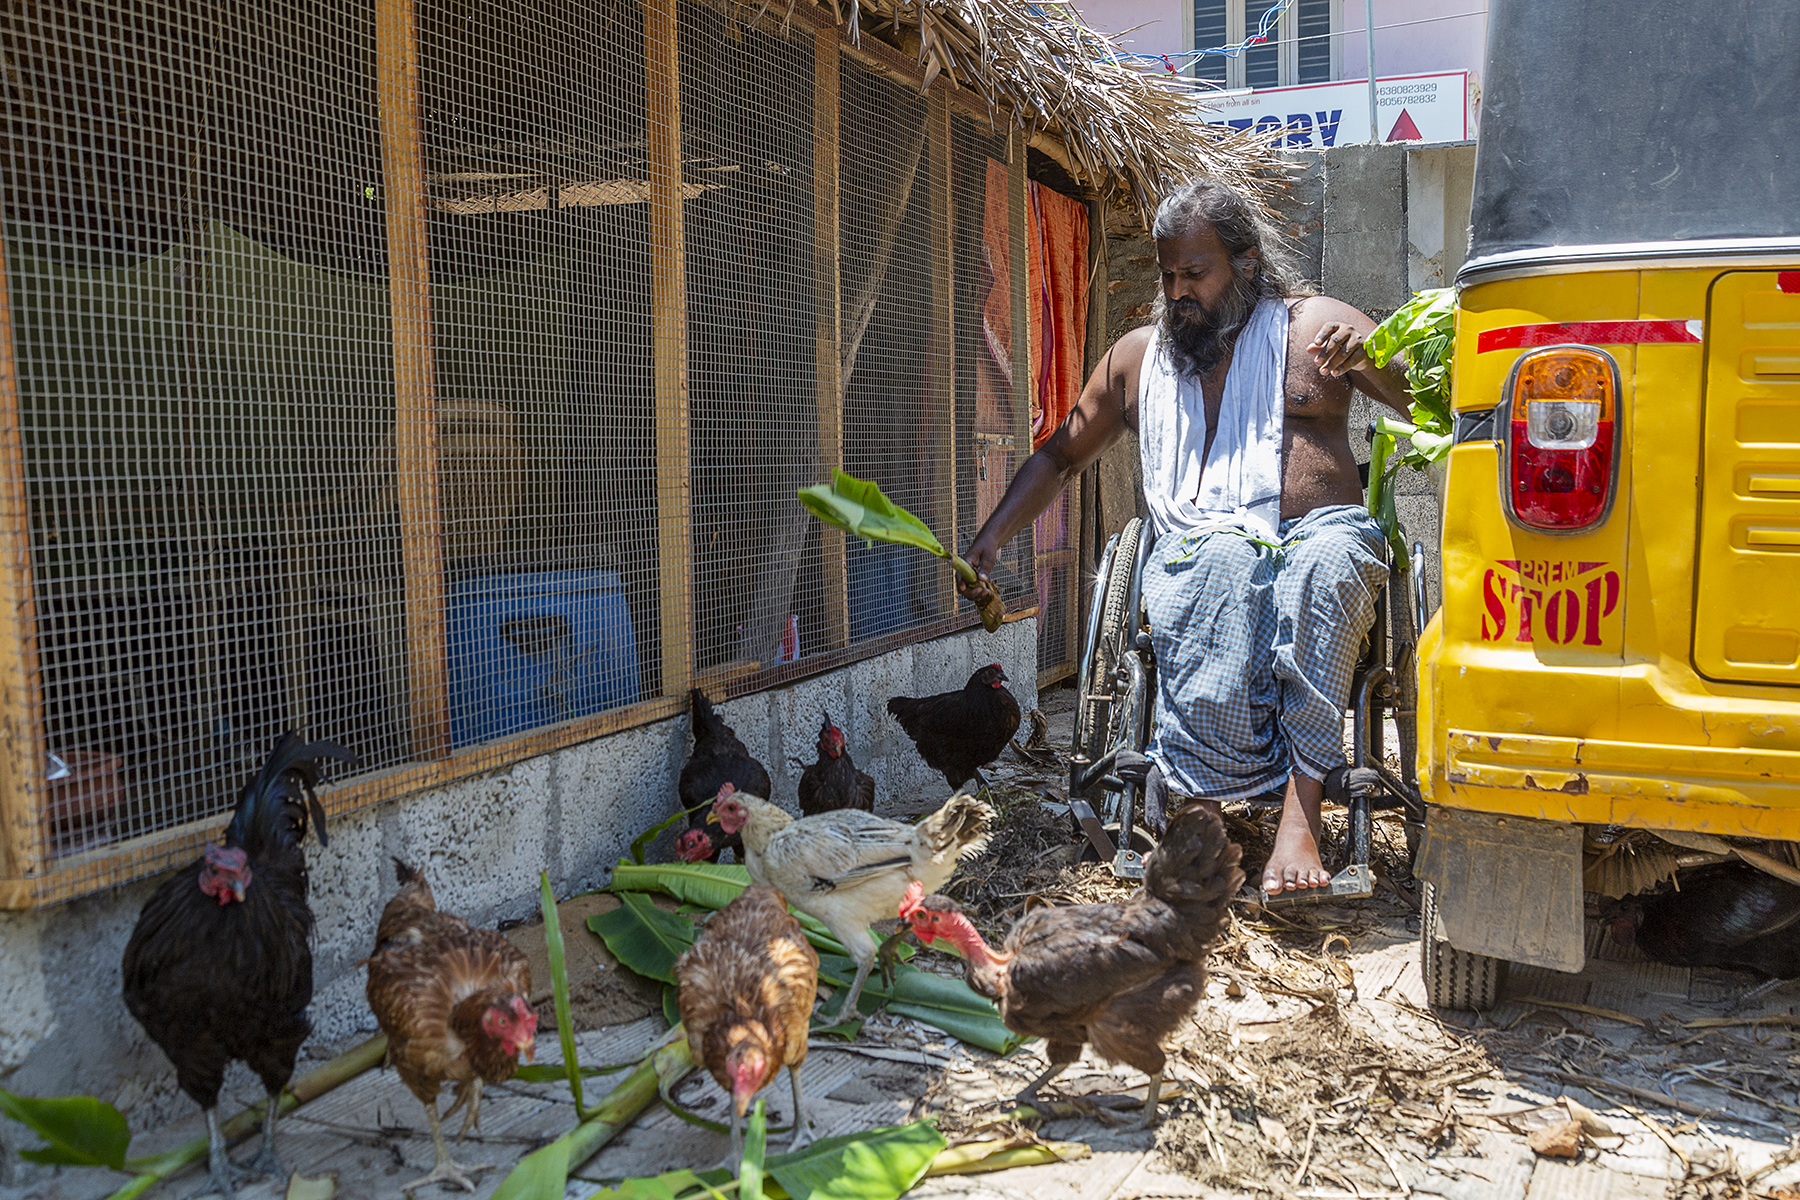 Vallinayagam sits in his wheelchair facing us, in the gap between his auto and a building. The front wall of the building is made of wire mesh. Vallinayagam is holding a plantain leaf and leaning down towards a flock of hens. There are more leaves strewn on the ground and there are four black hens, three brown hens and one white hen in front of him.